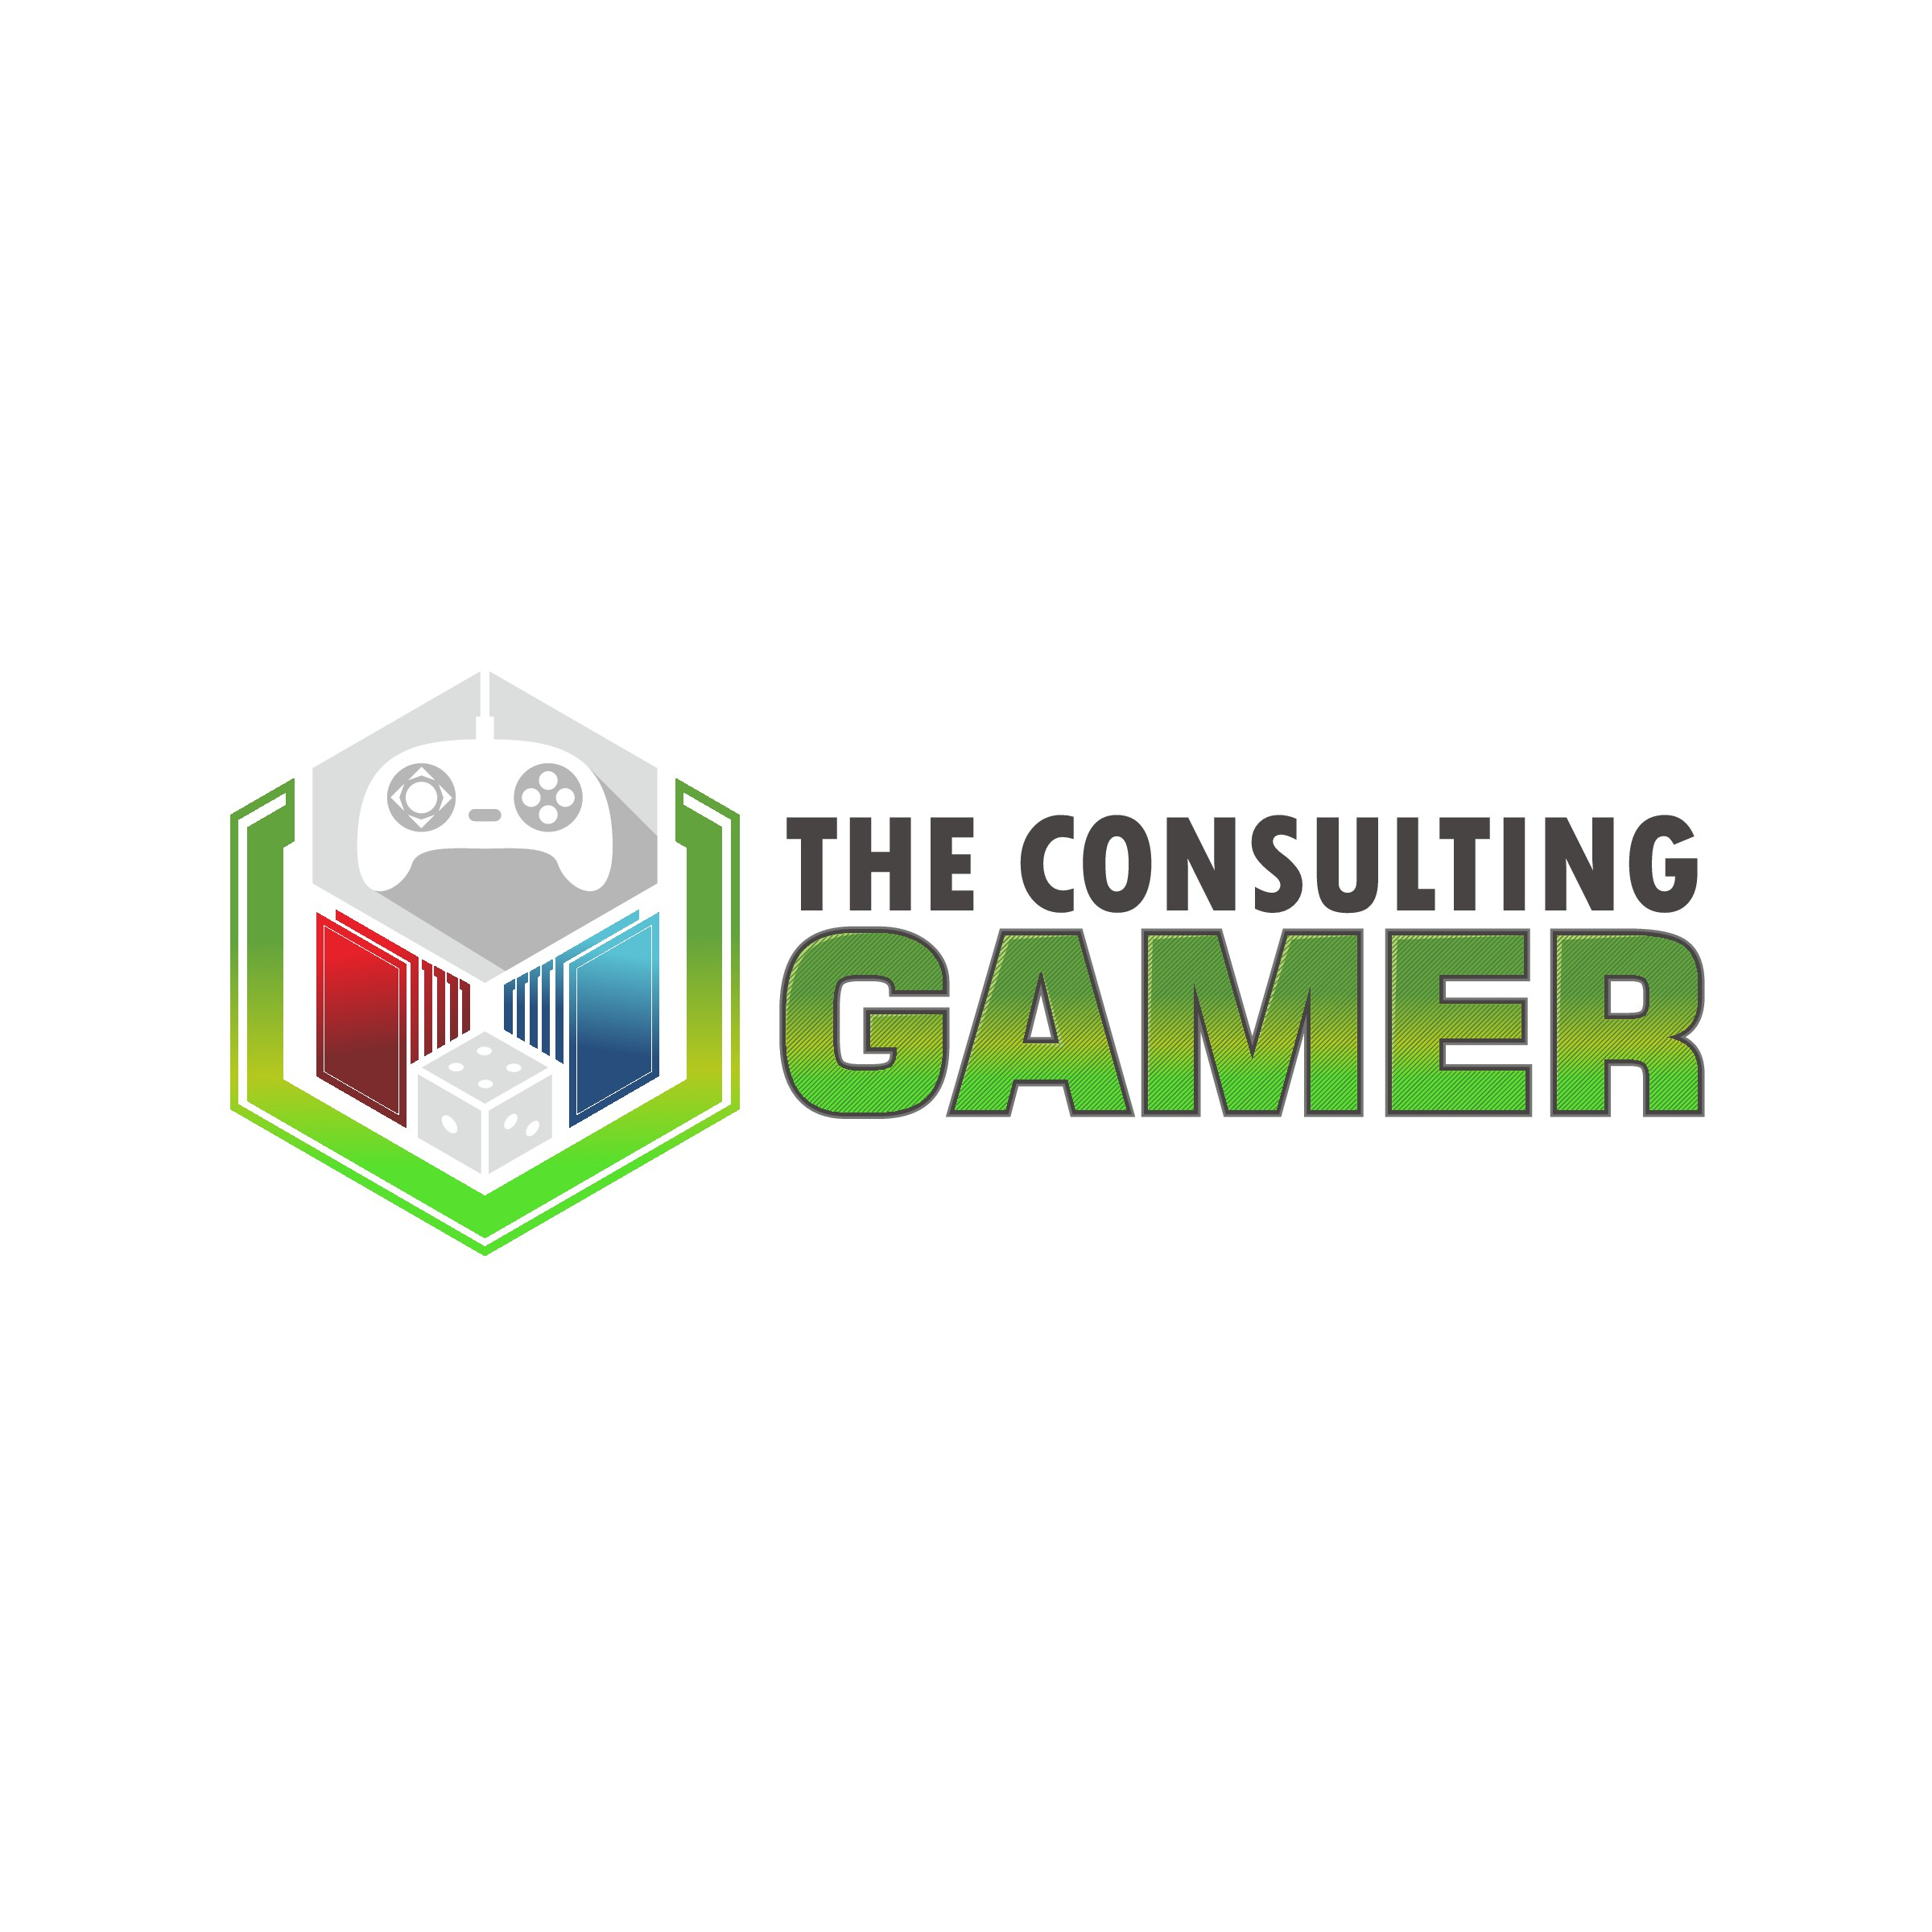 Create an exciting new logo to relaunch and rebrand a gaming and hobby retailer.